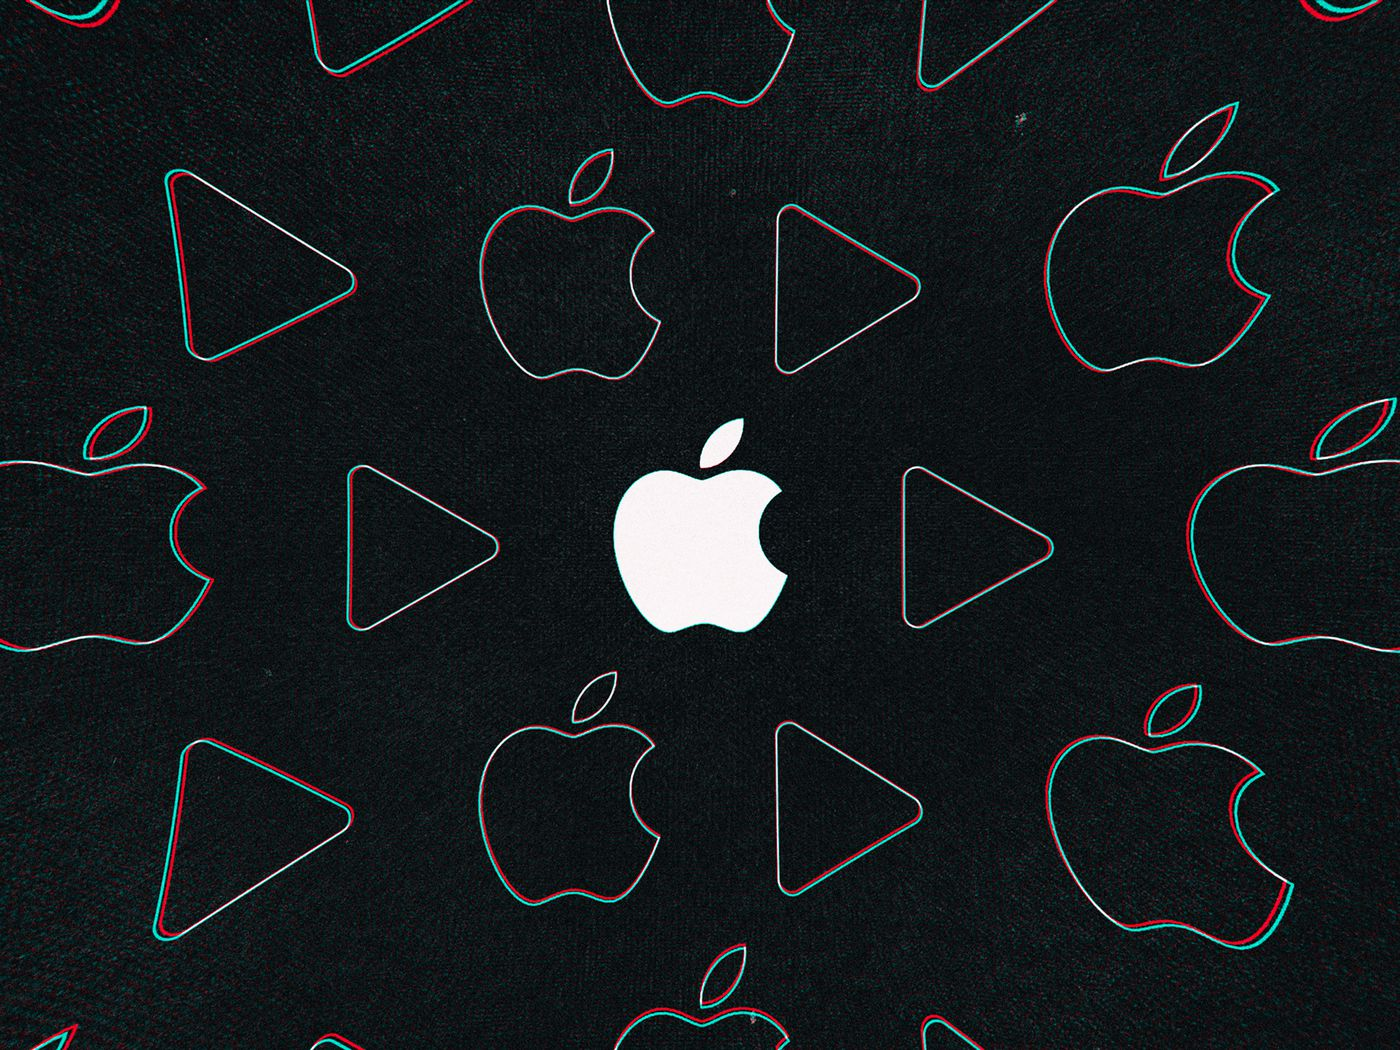 Apple is jumping into streaming video with a huge library of shows